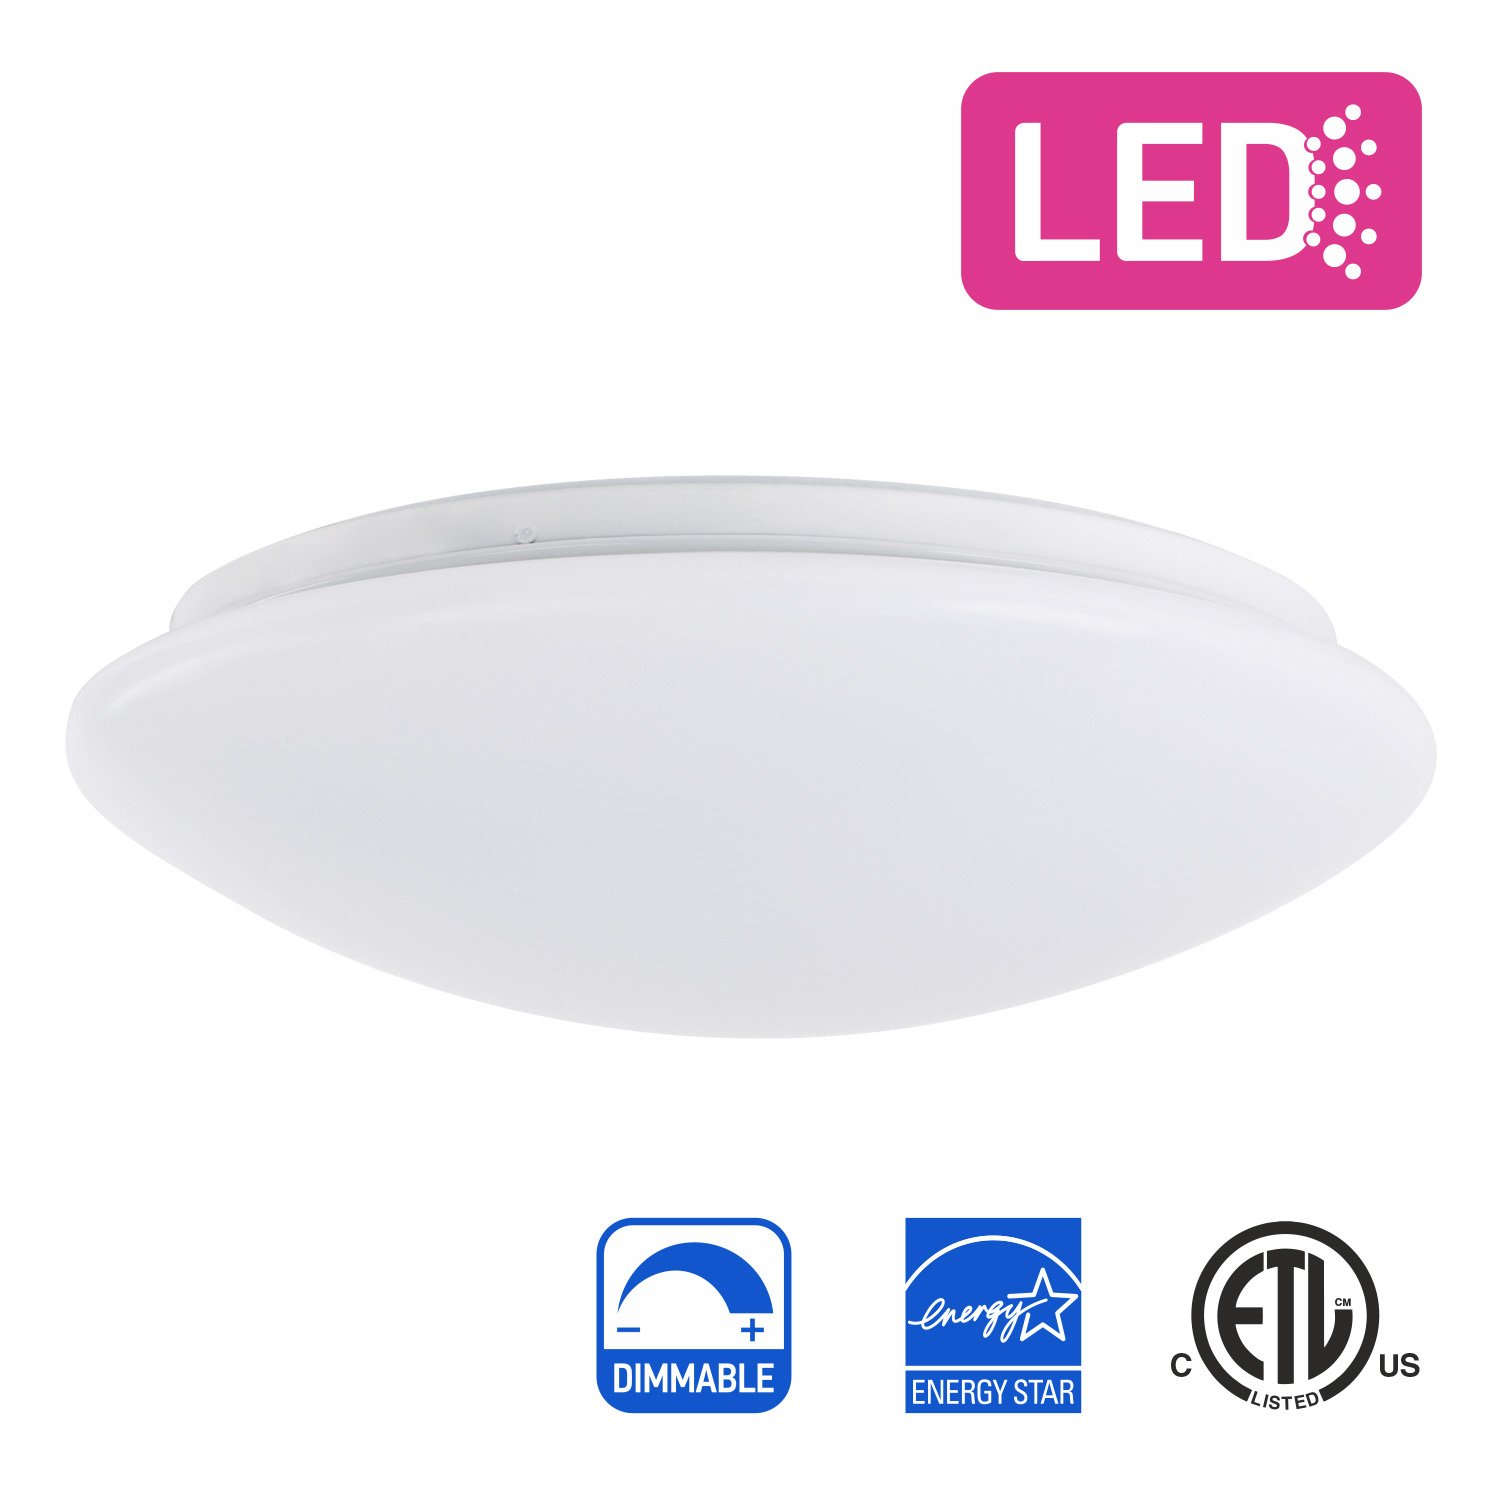 IN HOME 11-inch LED Flush mount Ceiling Light MS Series 20W (100 Watt equivalent), Dimmable, 5000K (Daylight), 1864 Lumens, White Finish with Acrylic shade, ETL and ENERGY STAR listed by IN HOME